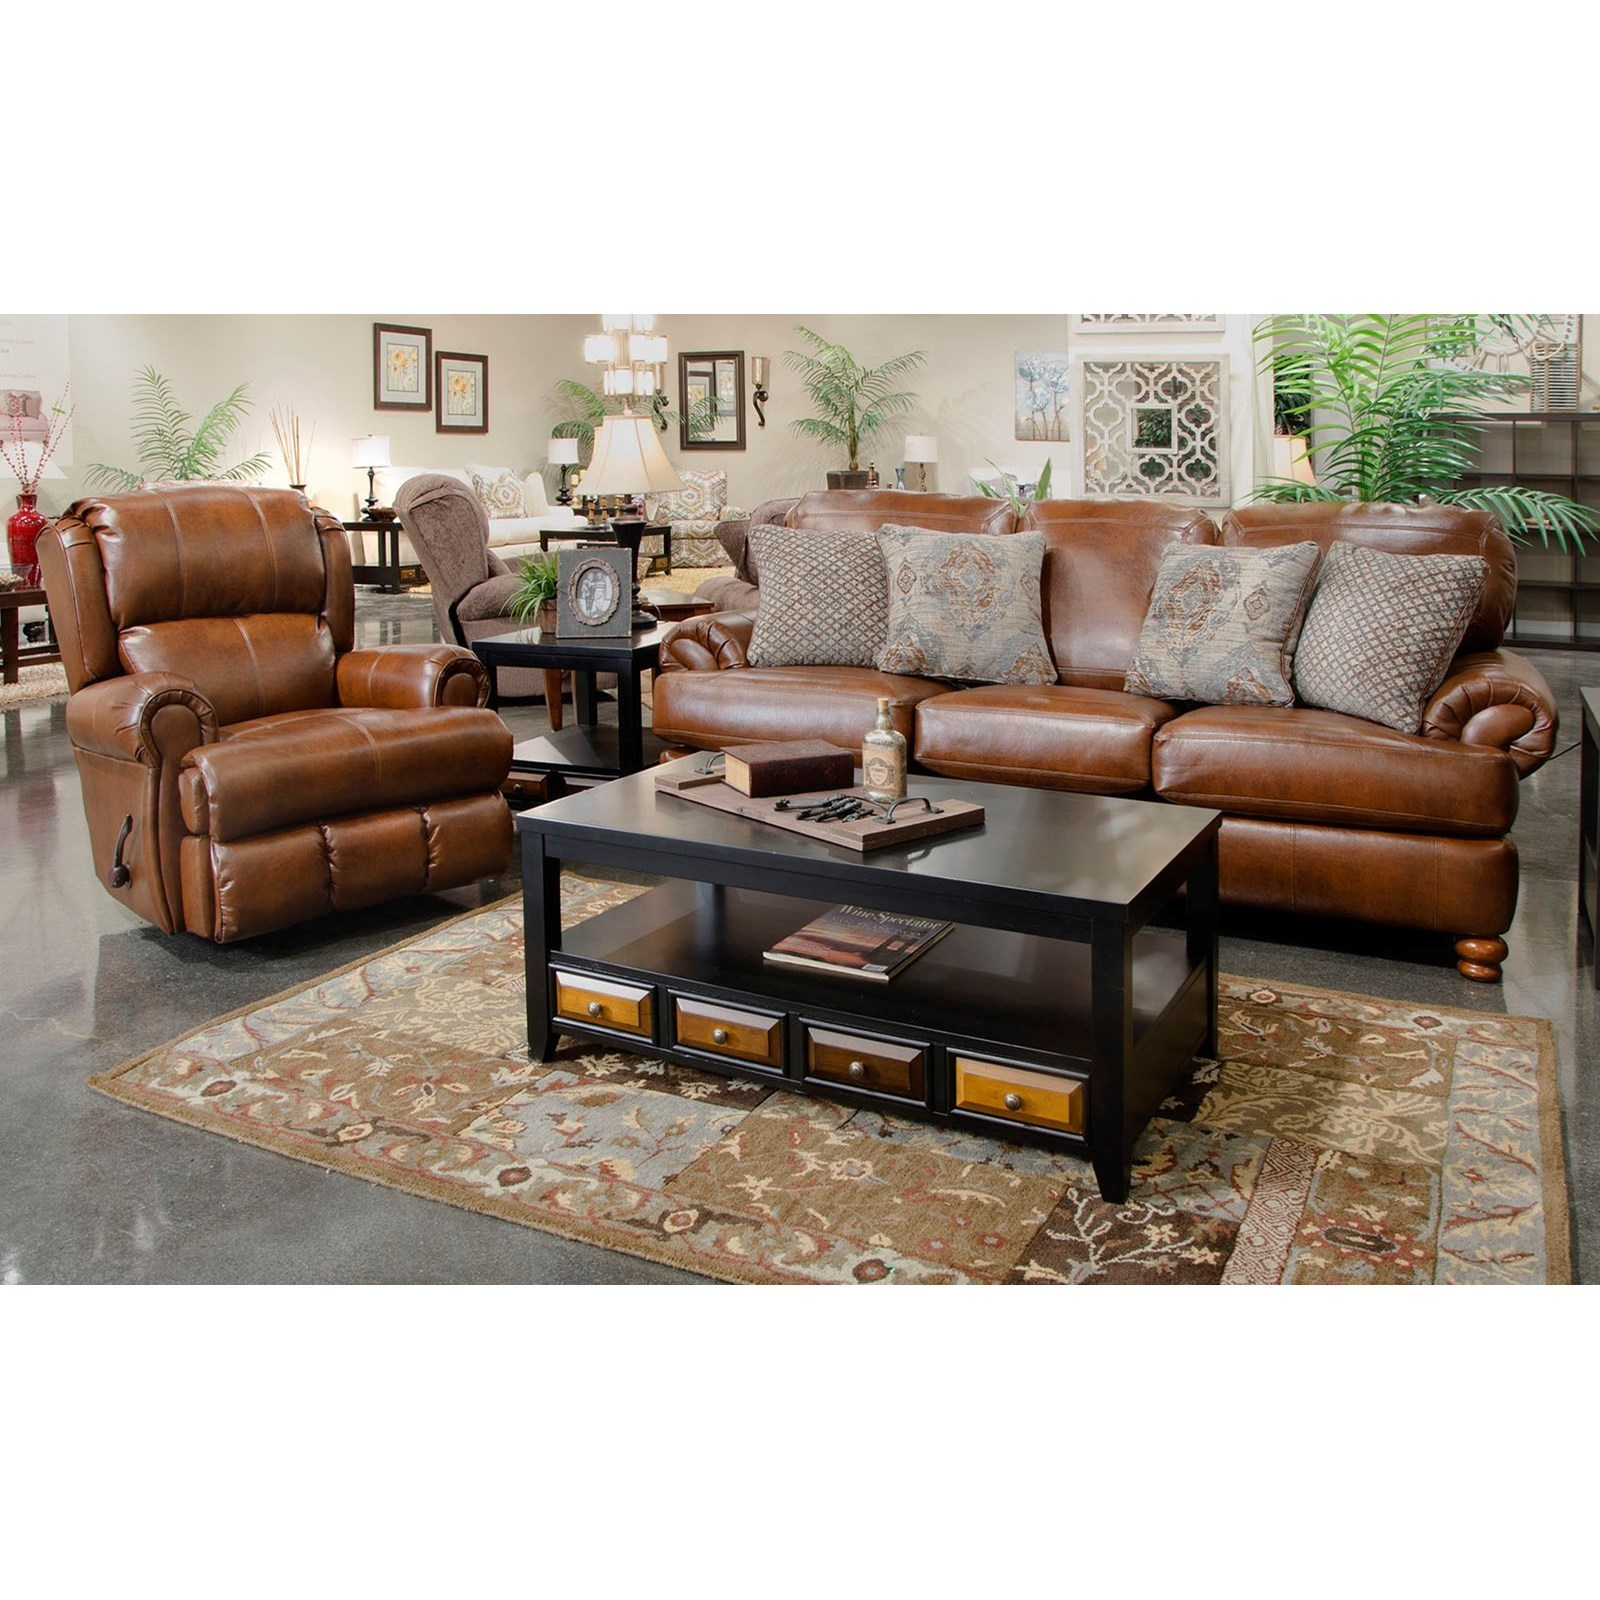 Jackson Furniture Southport Stationary Sofa And Glider Recliner Set   L Fish    Stationary Living .